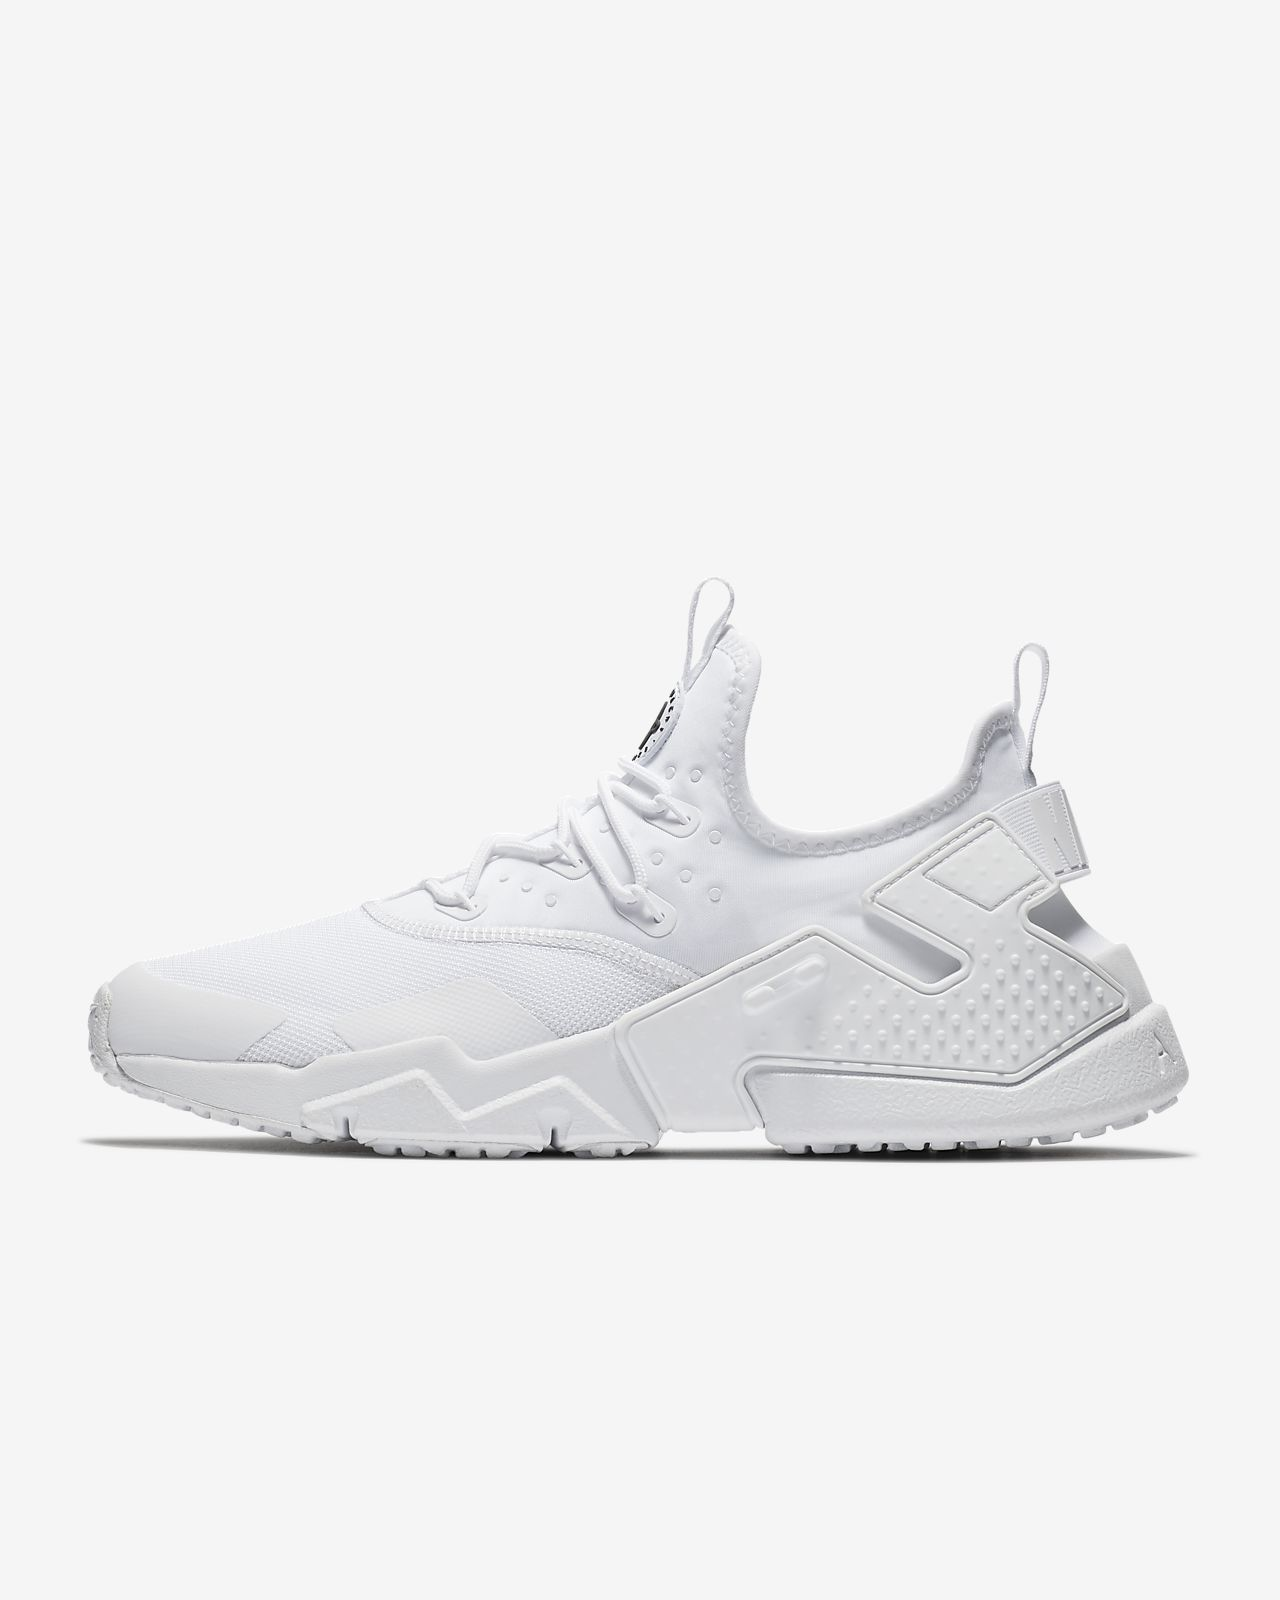 6287847dd128e Nike Air Huarache Drift Men s Shoe. Nike.com